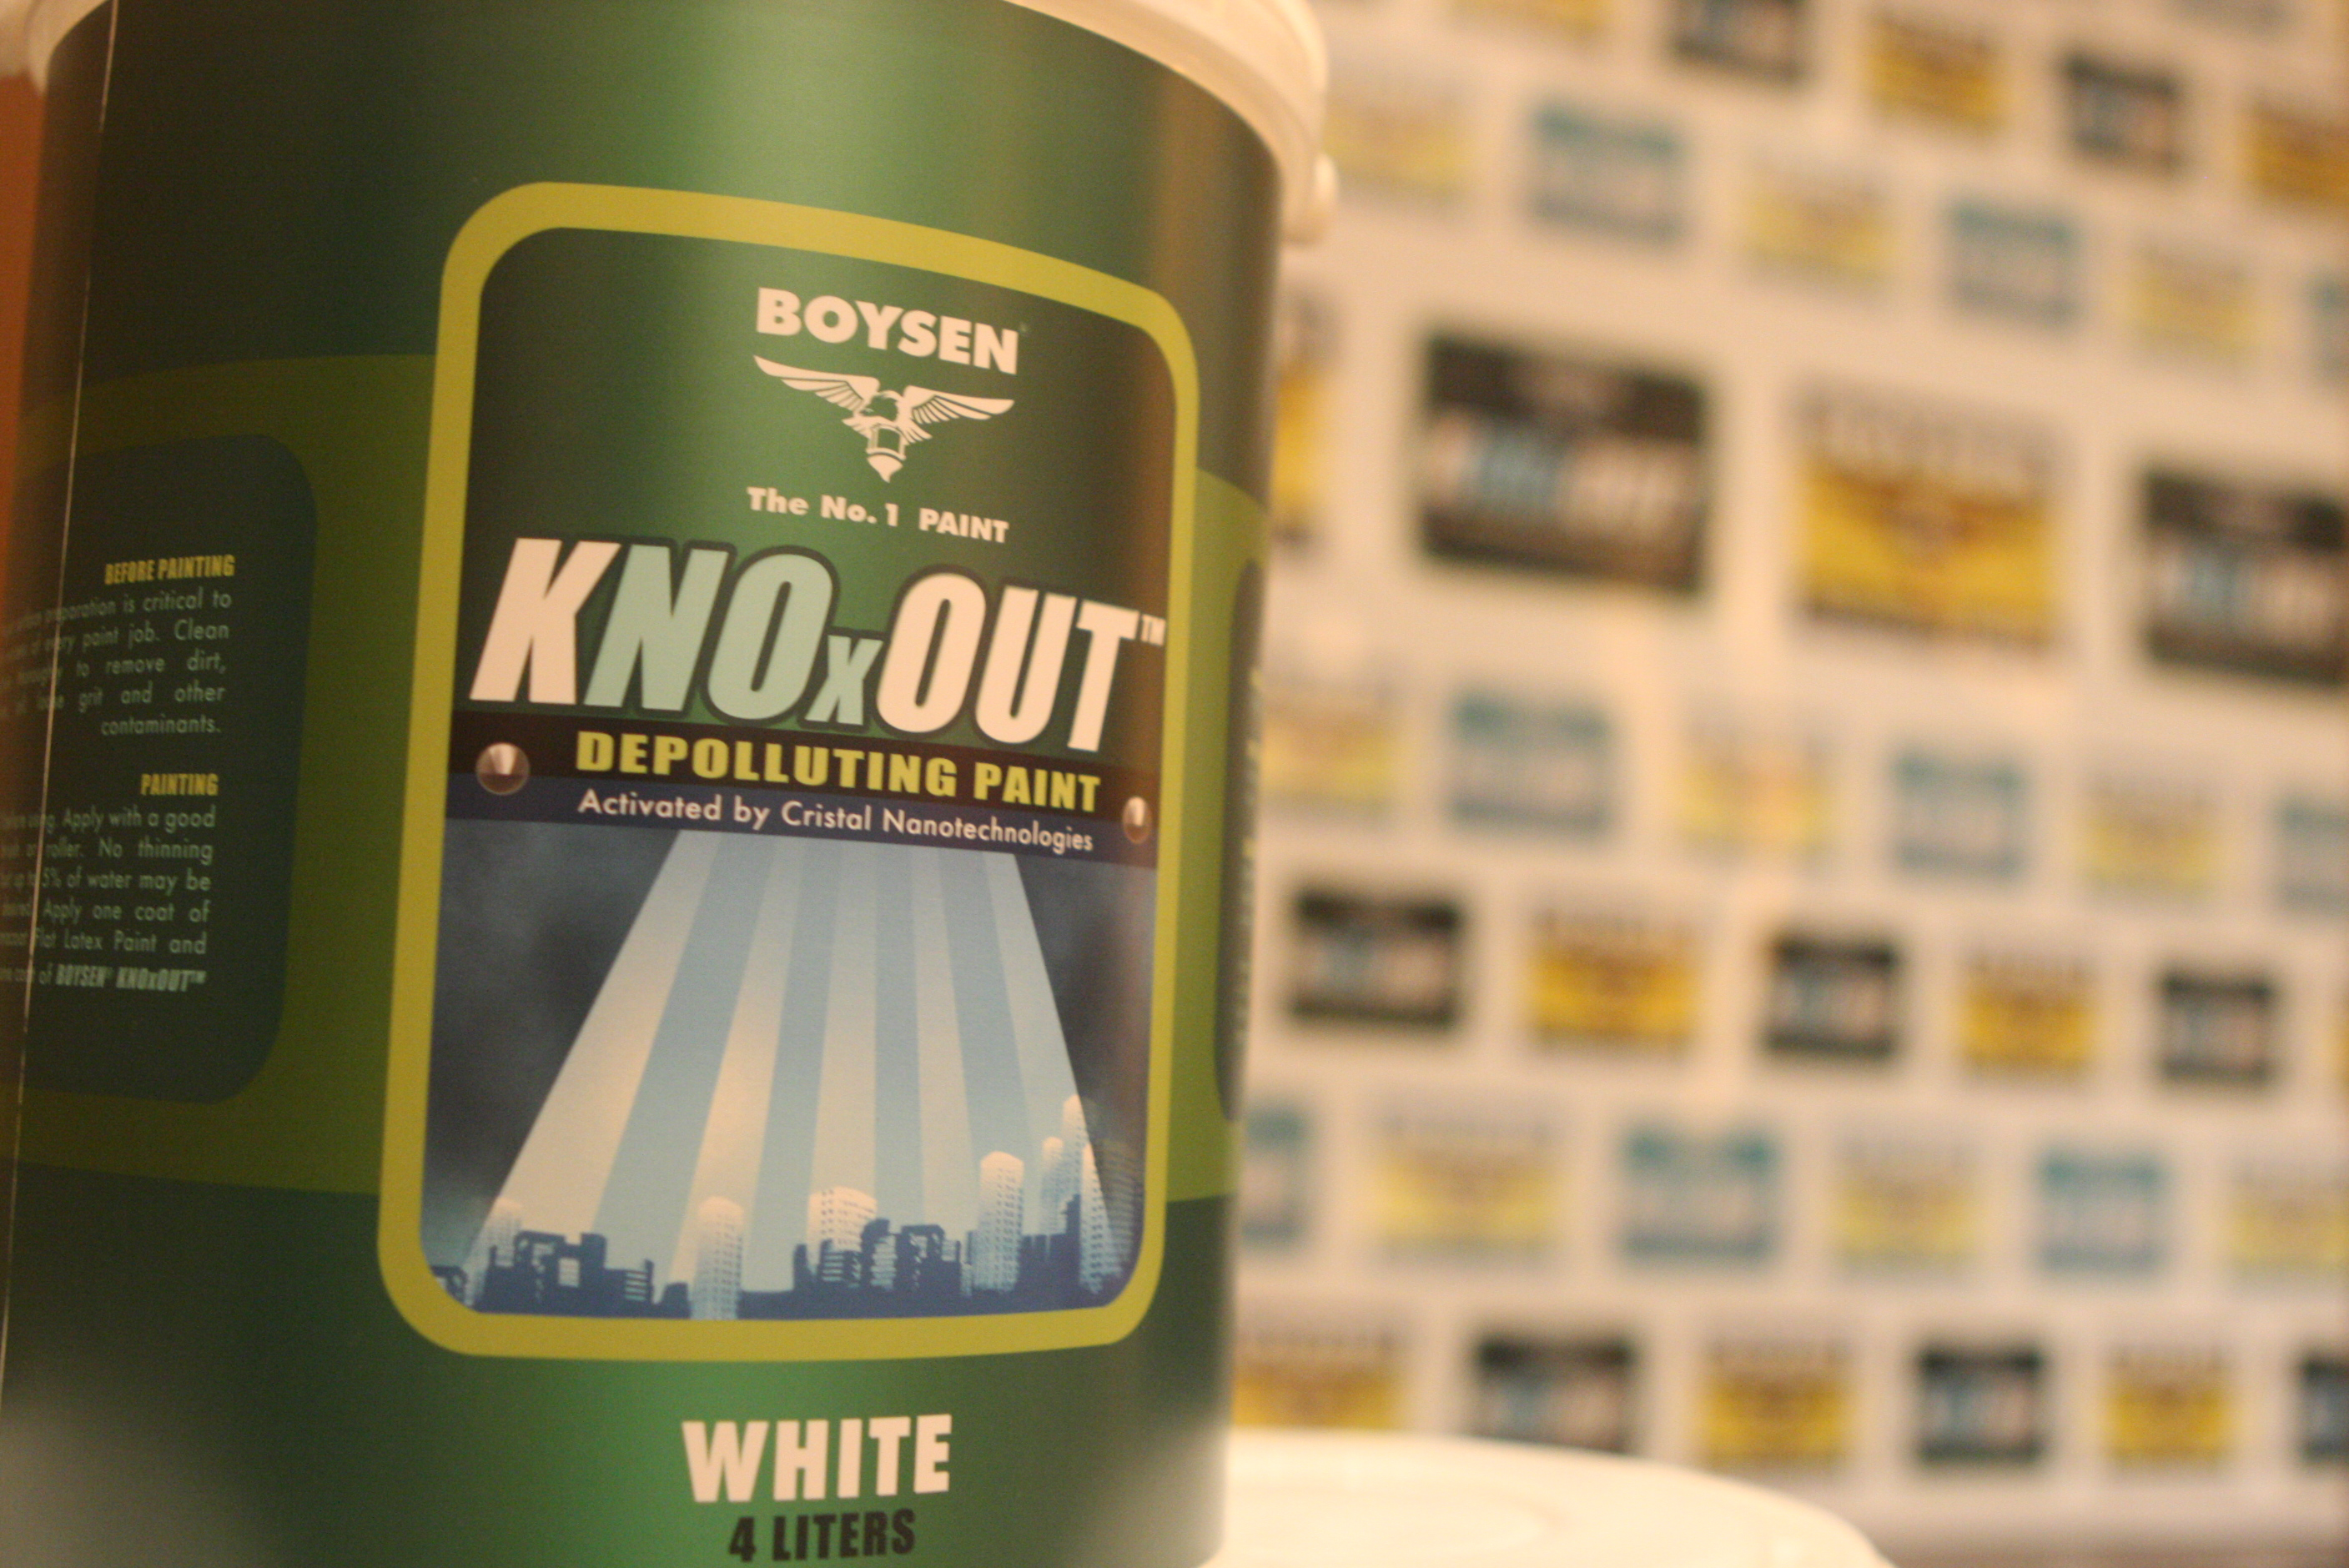 BOYSEN<sup>®</sup> Launches Advanced Depolluting Paint